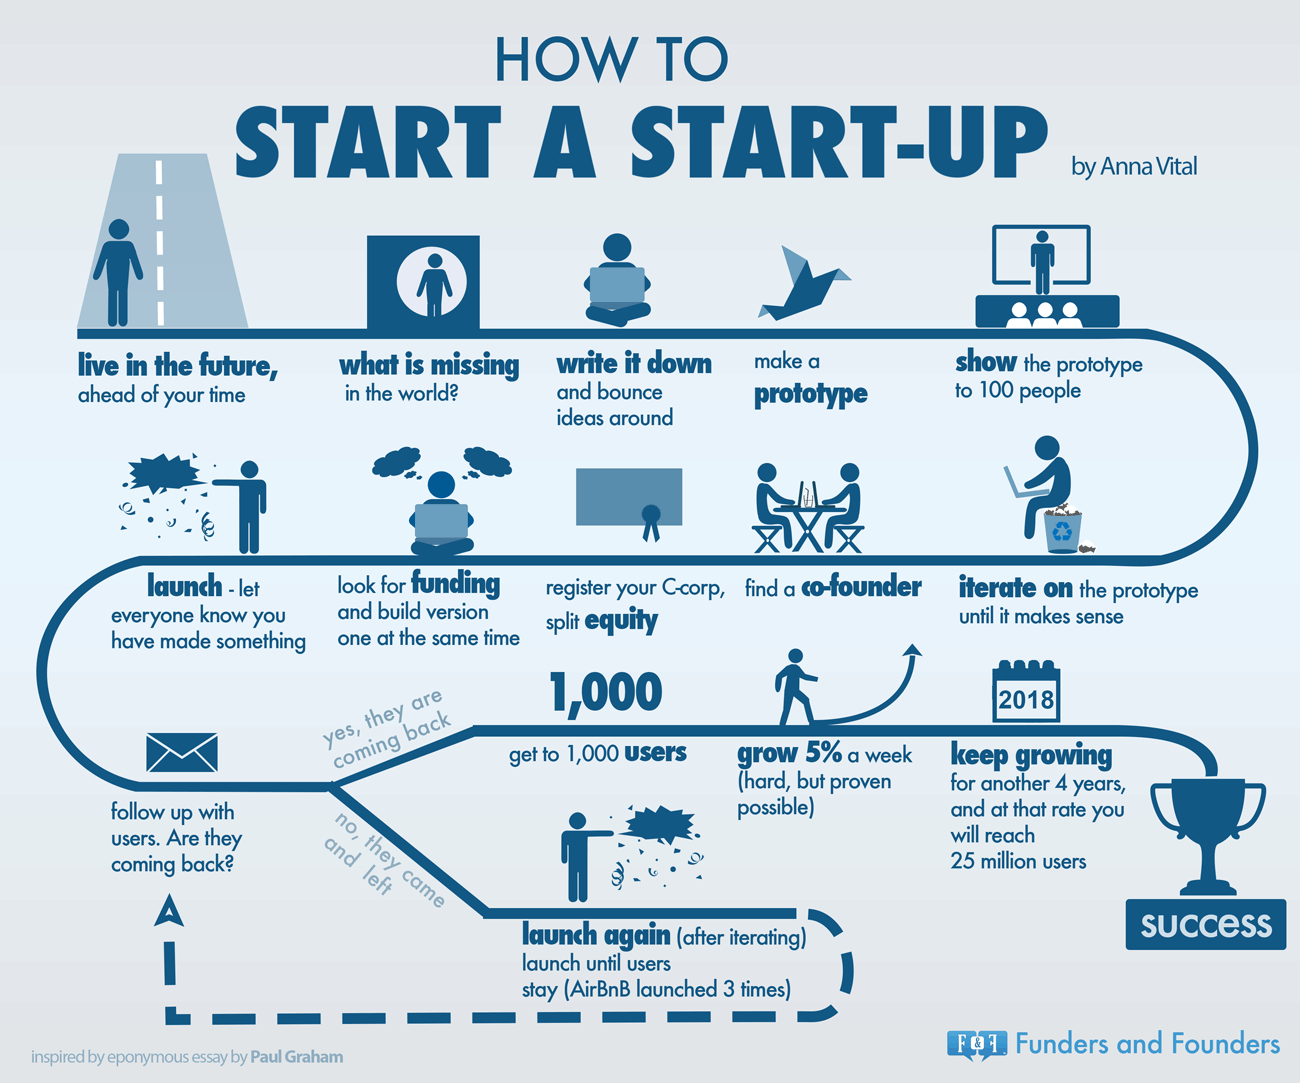 how-to-start-a-startup